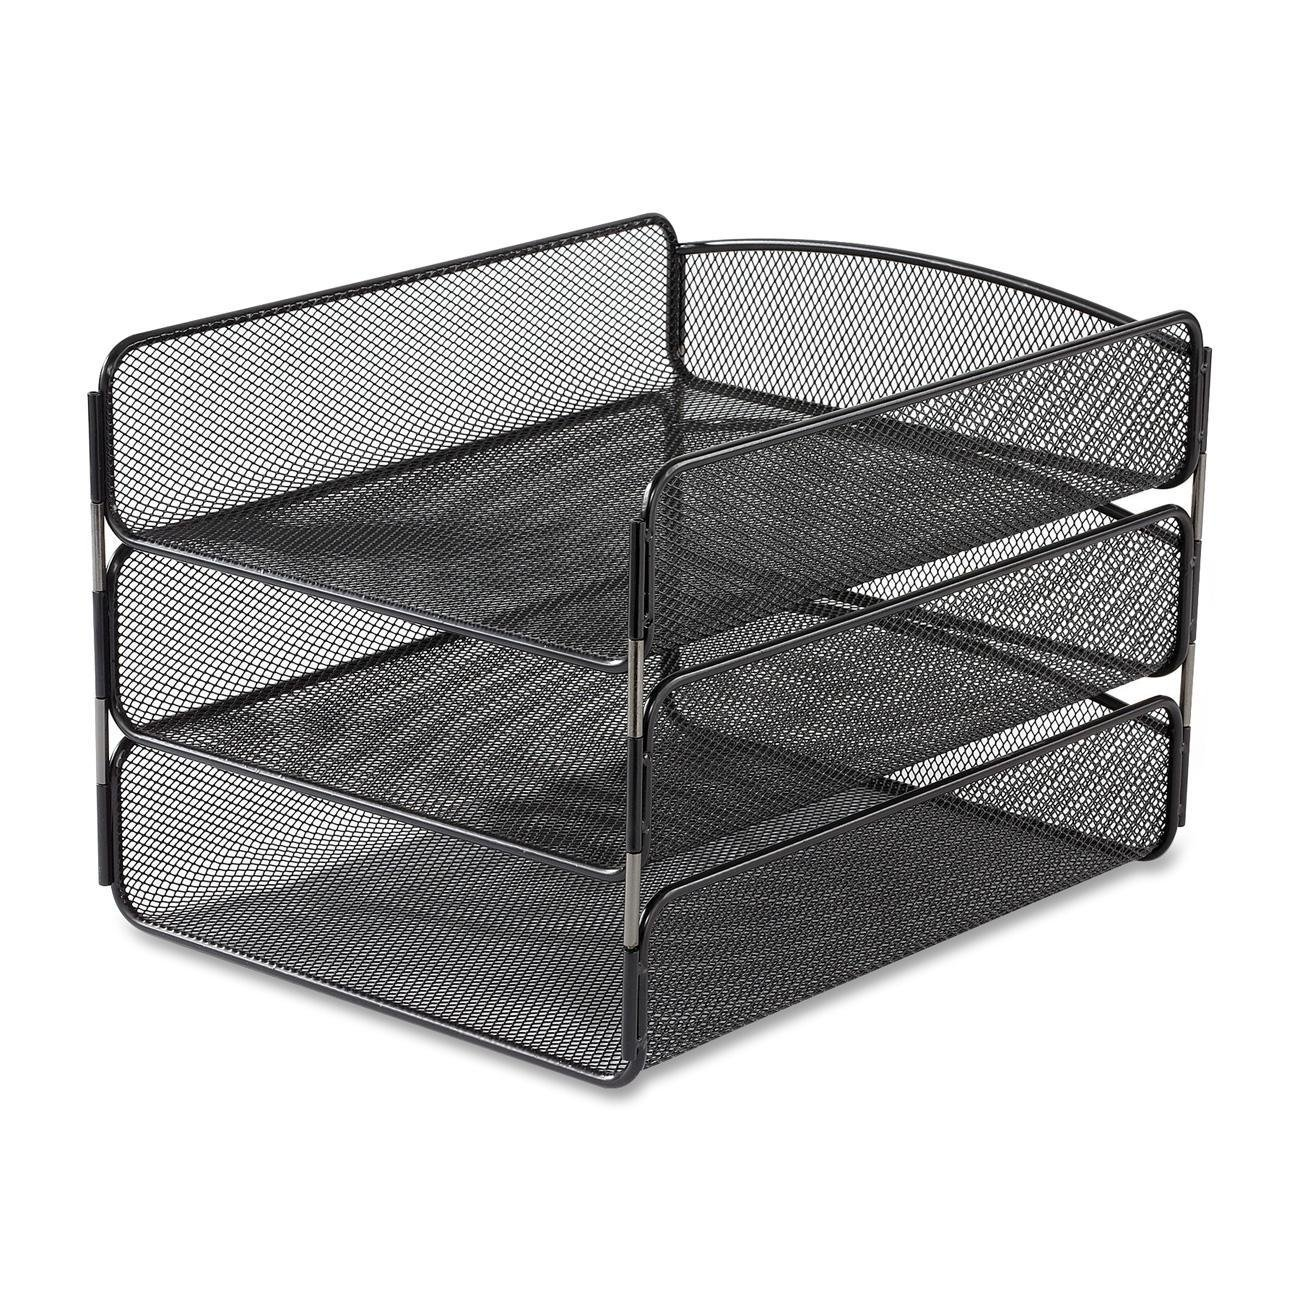 Safco desk organizer triple tray mesh storage office desk - Safco mesh desk organizer ...